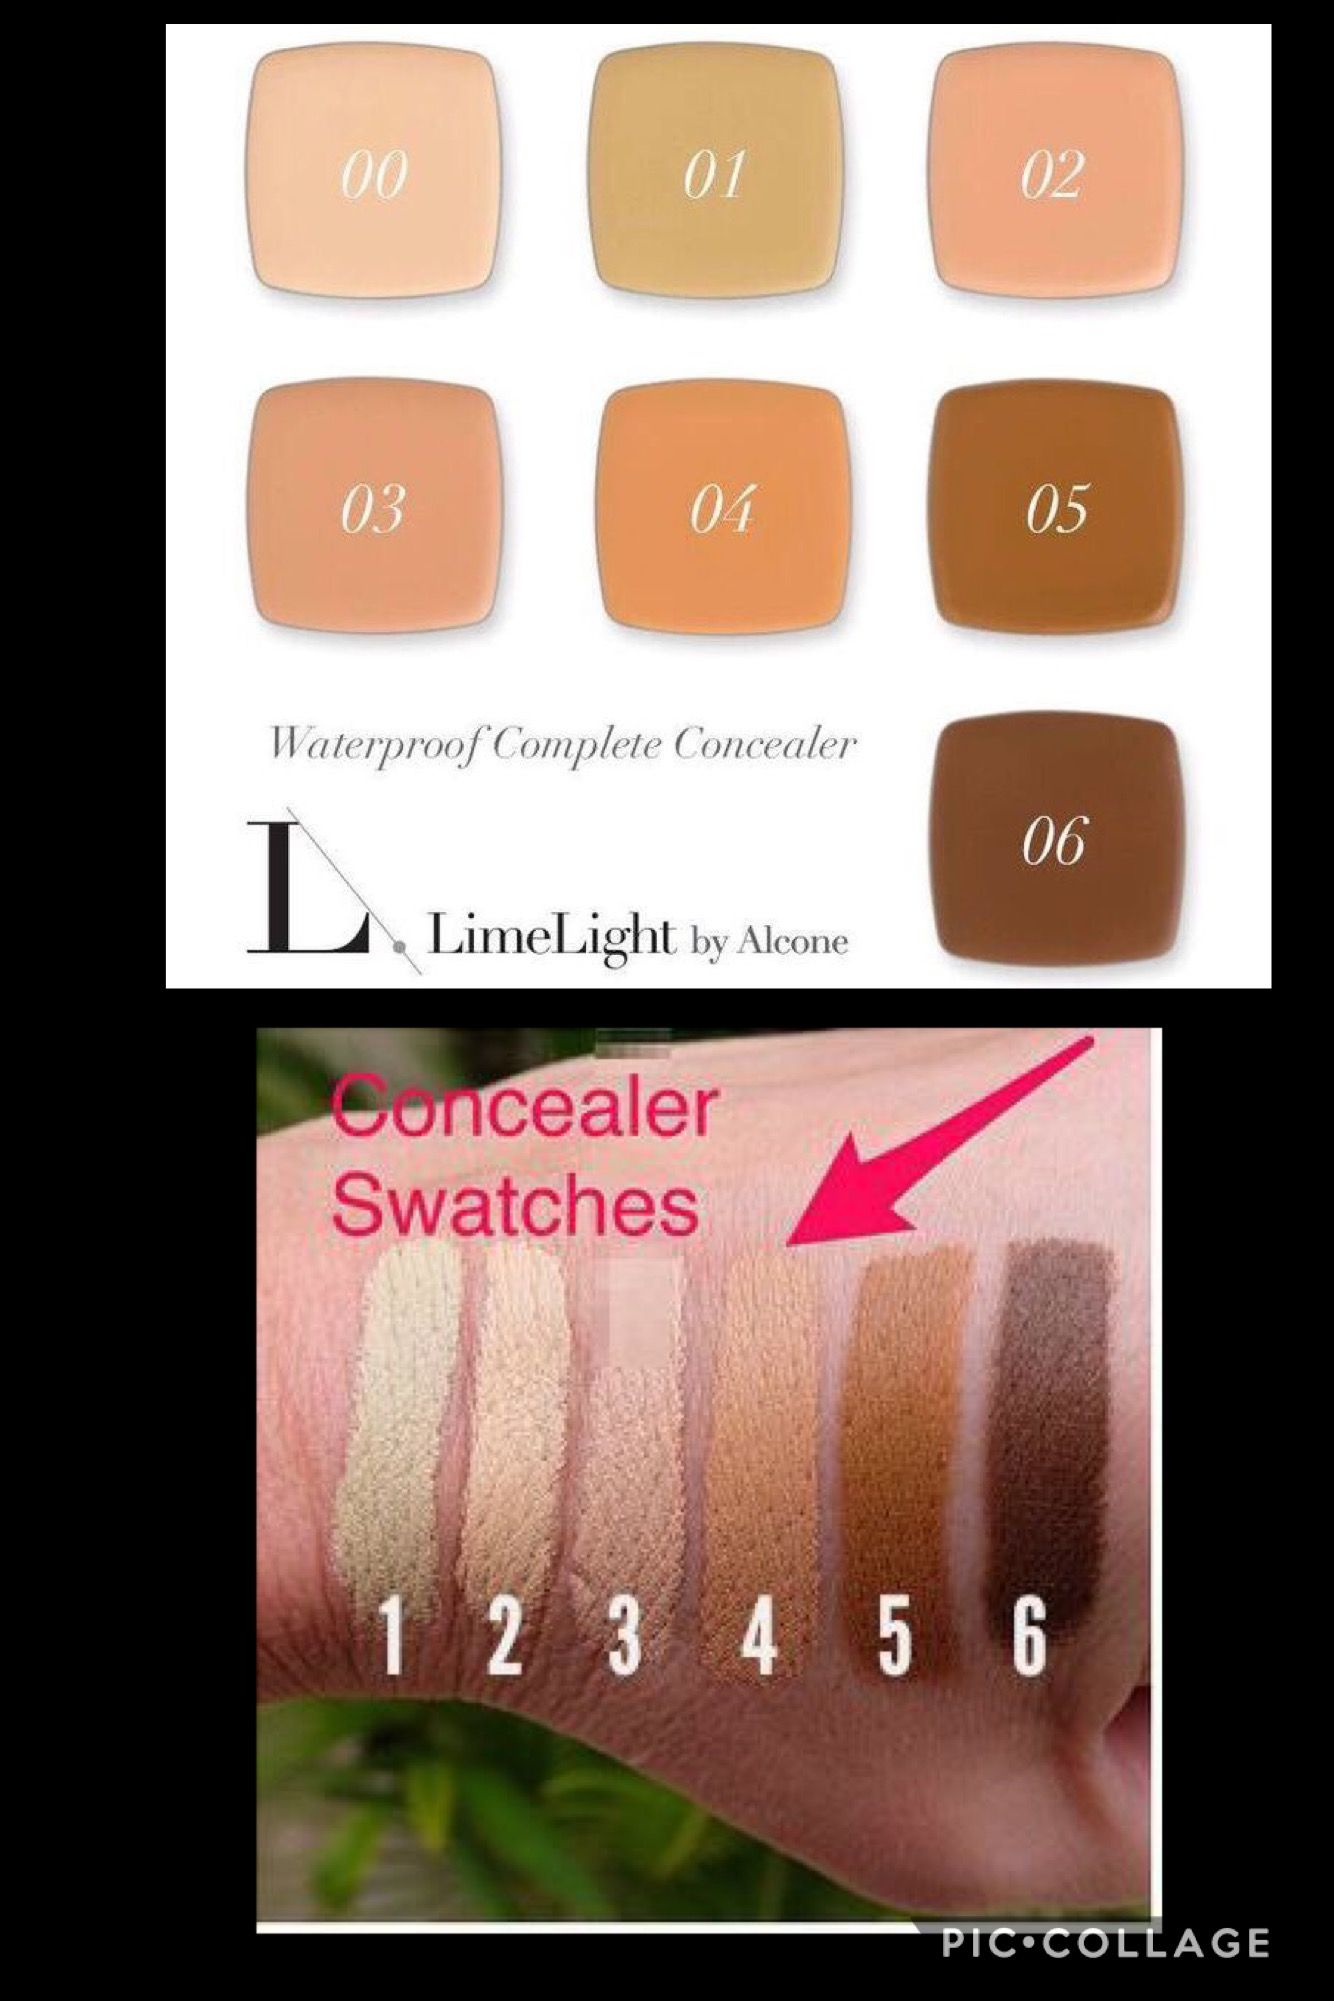 Waterproof Complete Concealer Made famous by world